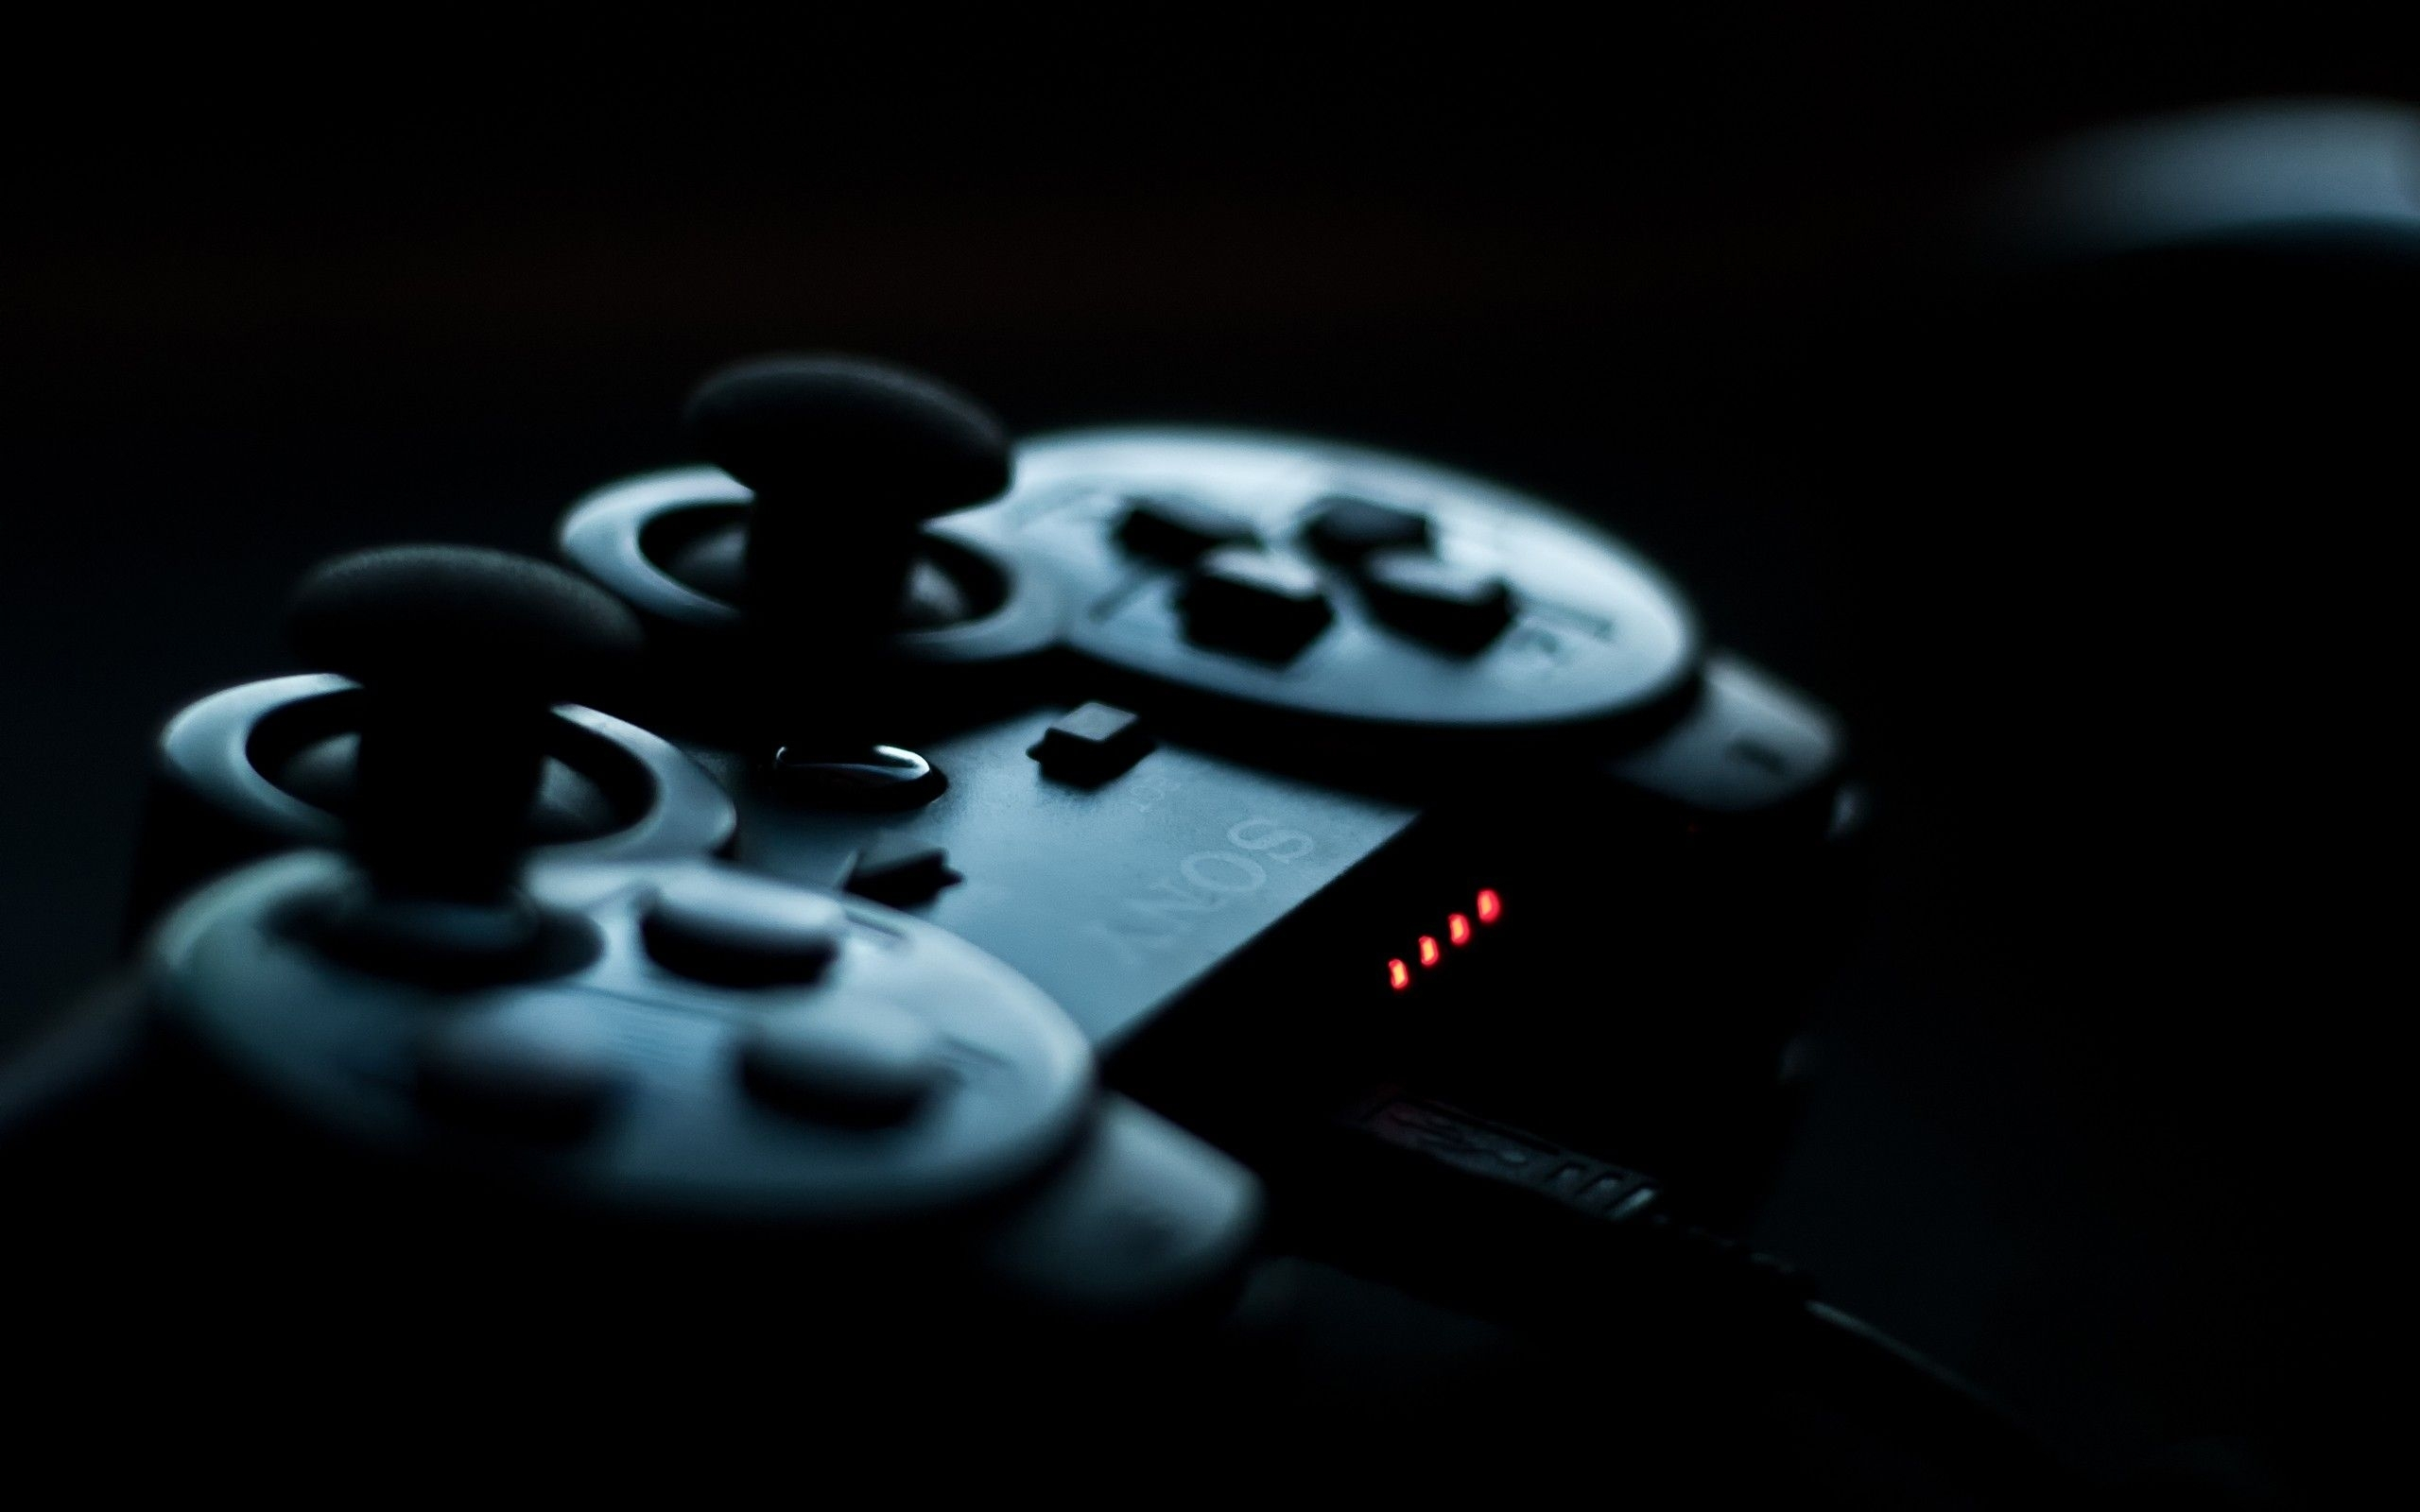 video game wallpaper widescreen free download > subwallpaper